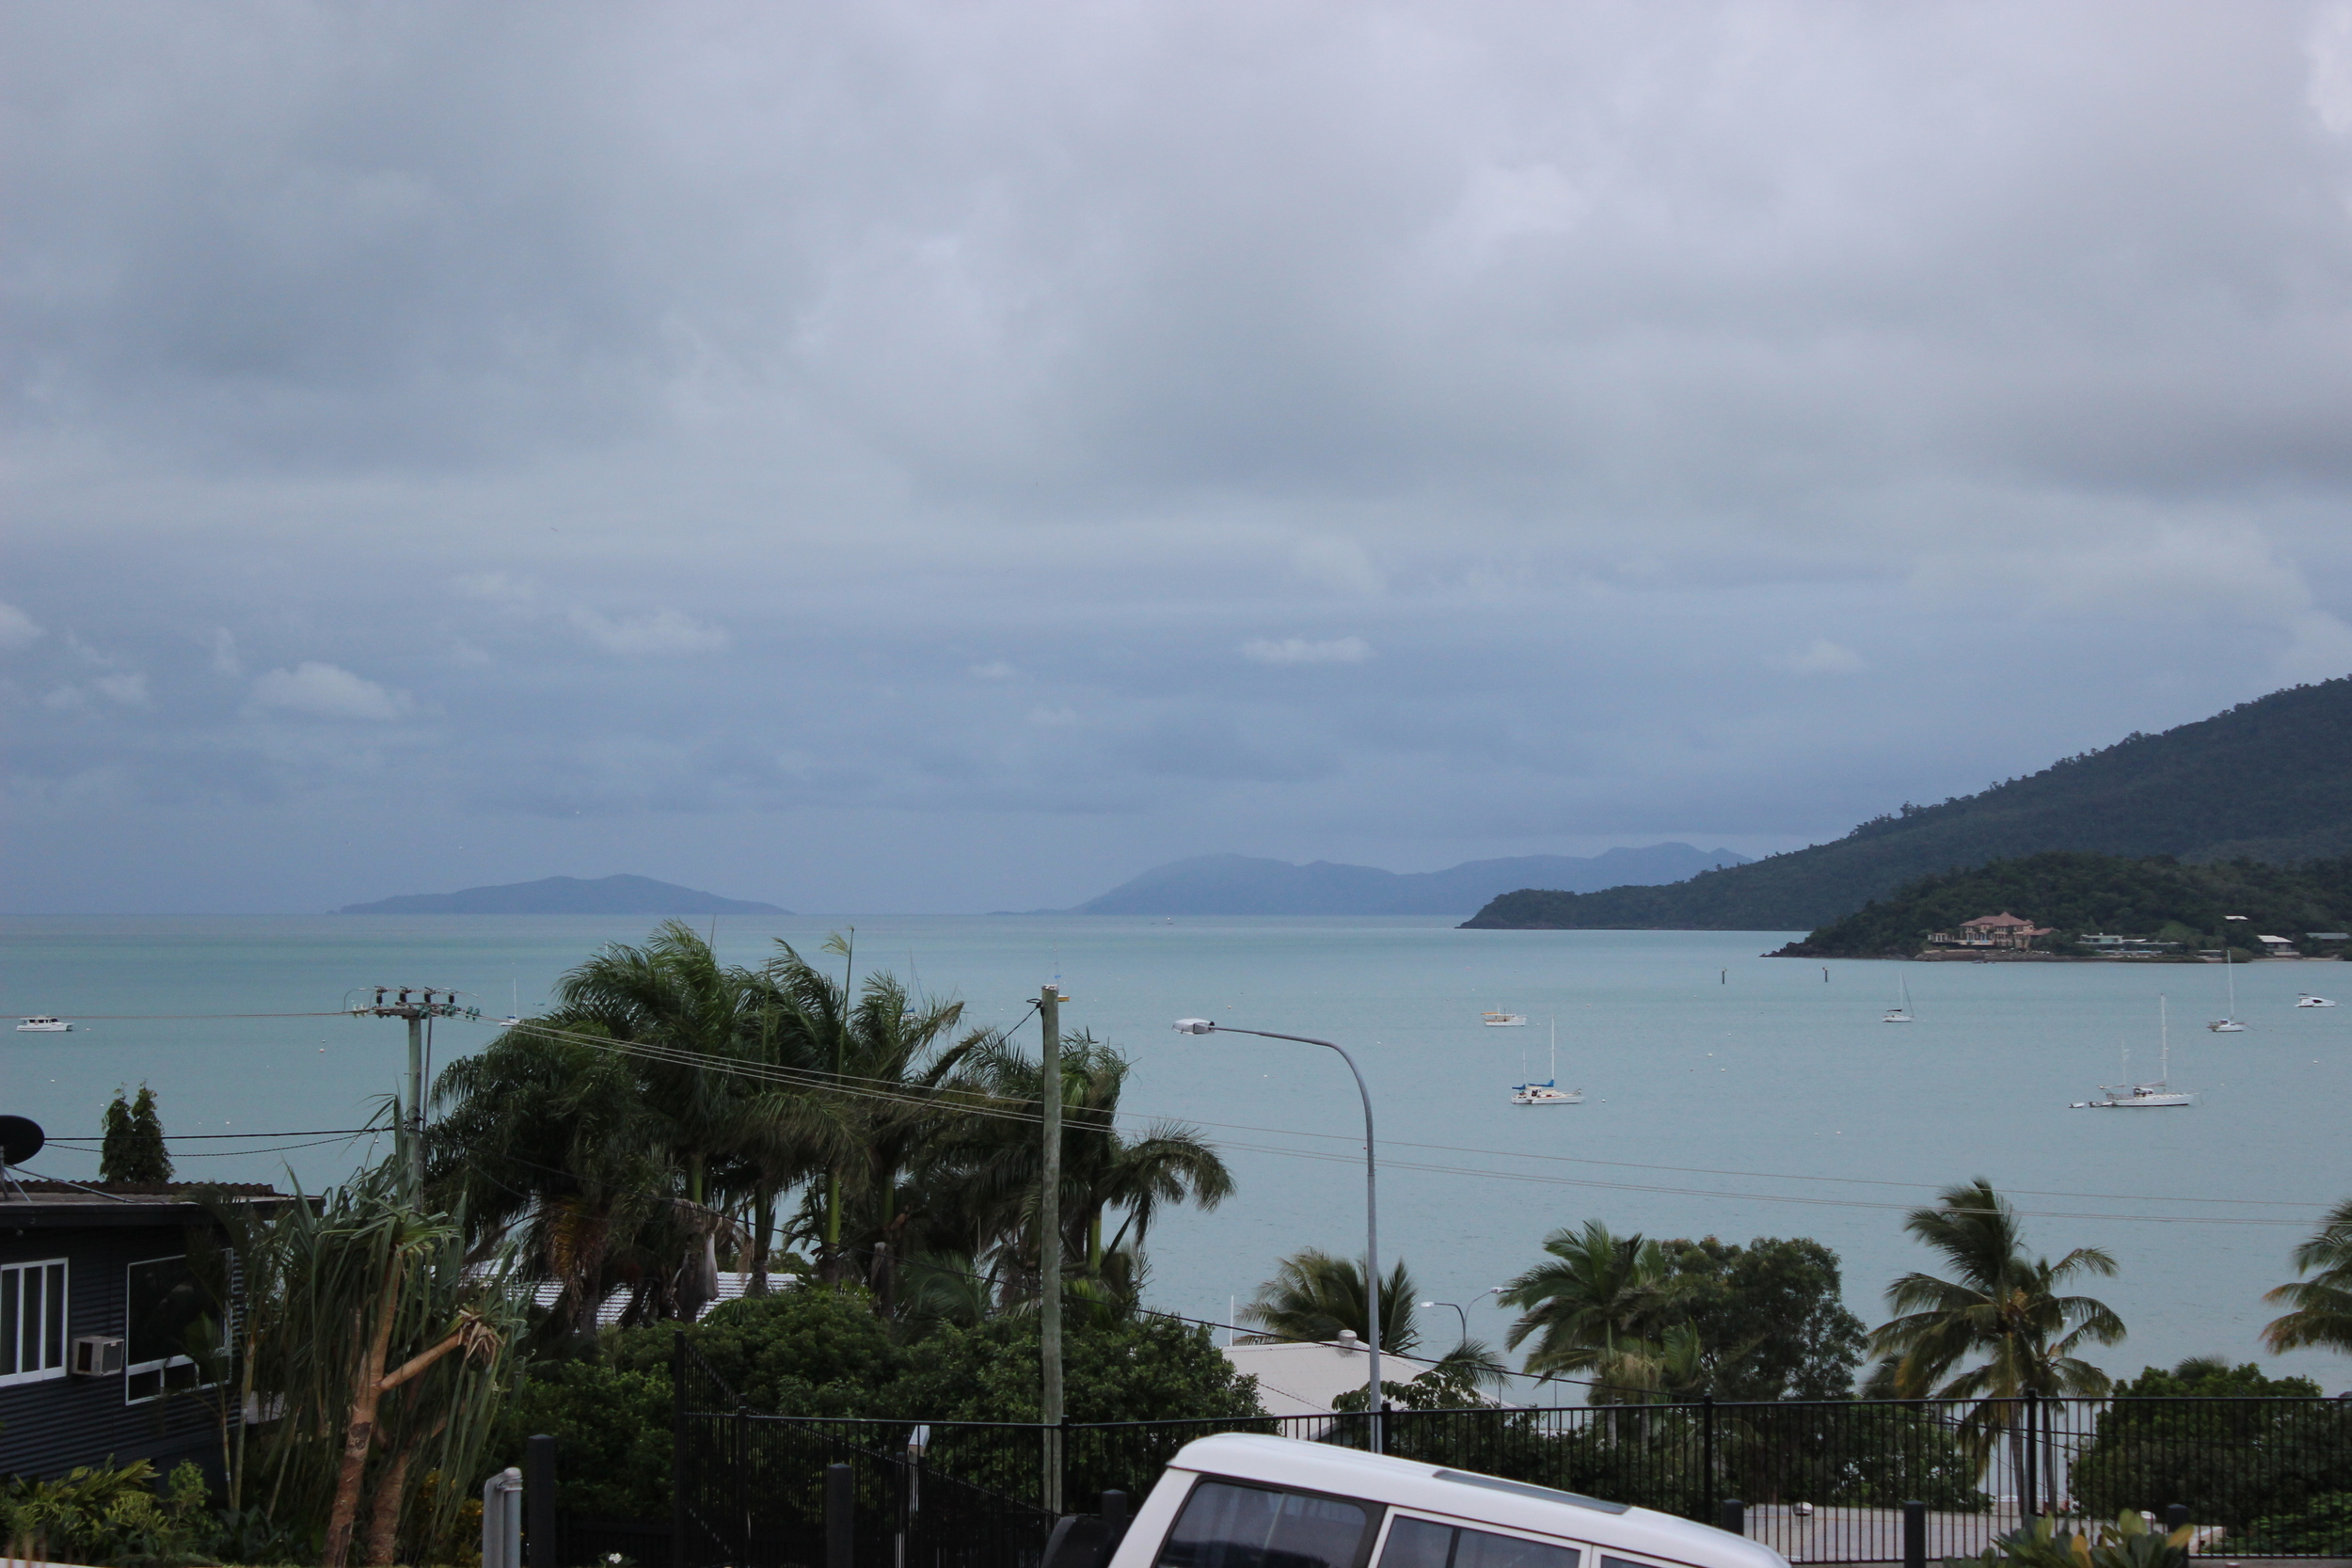 !st Day - Barrier Reef tour day.